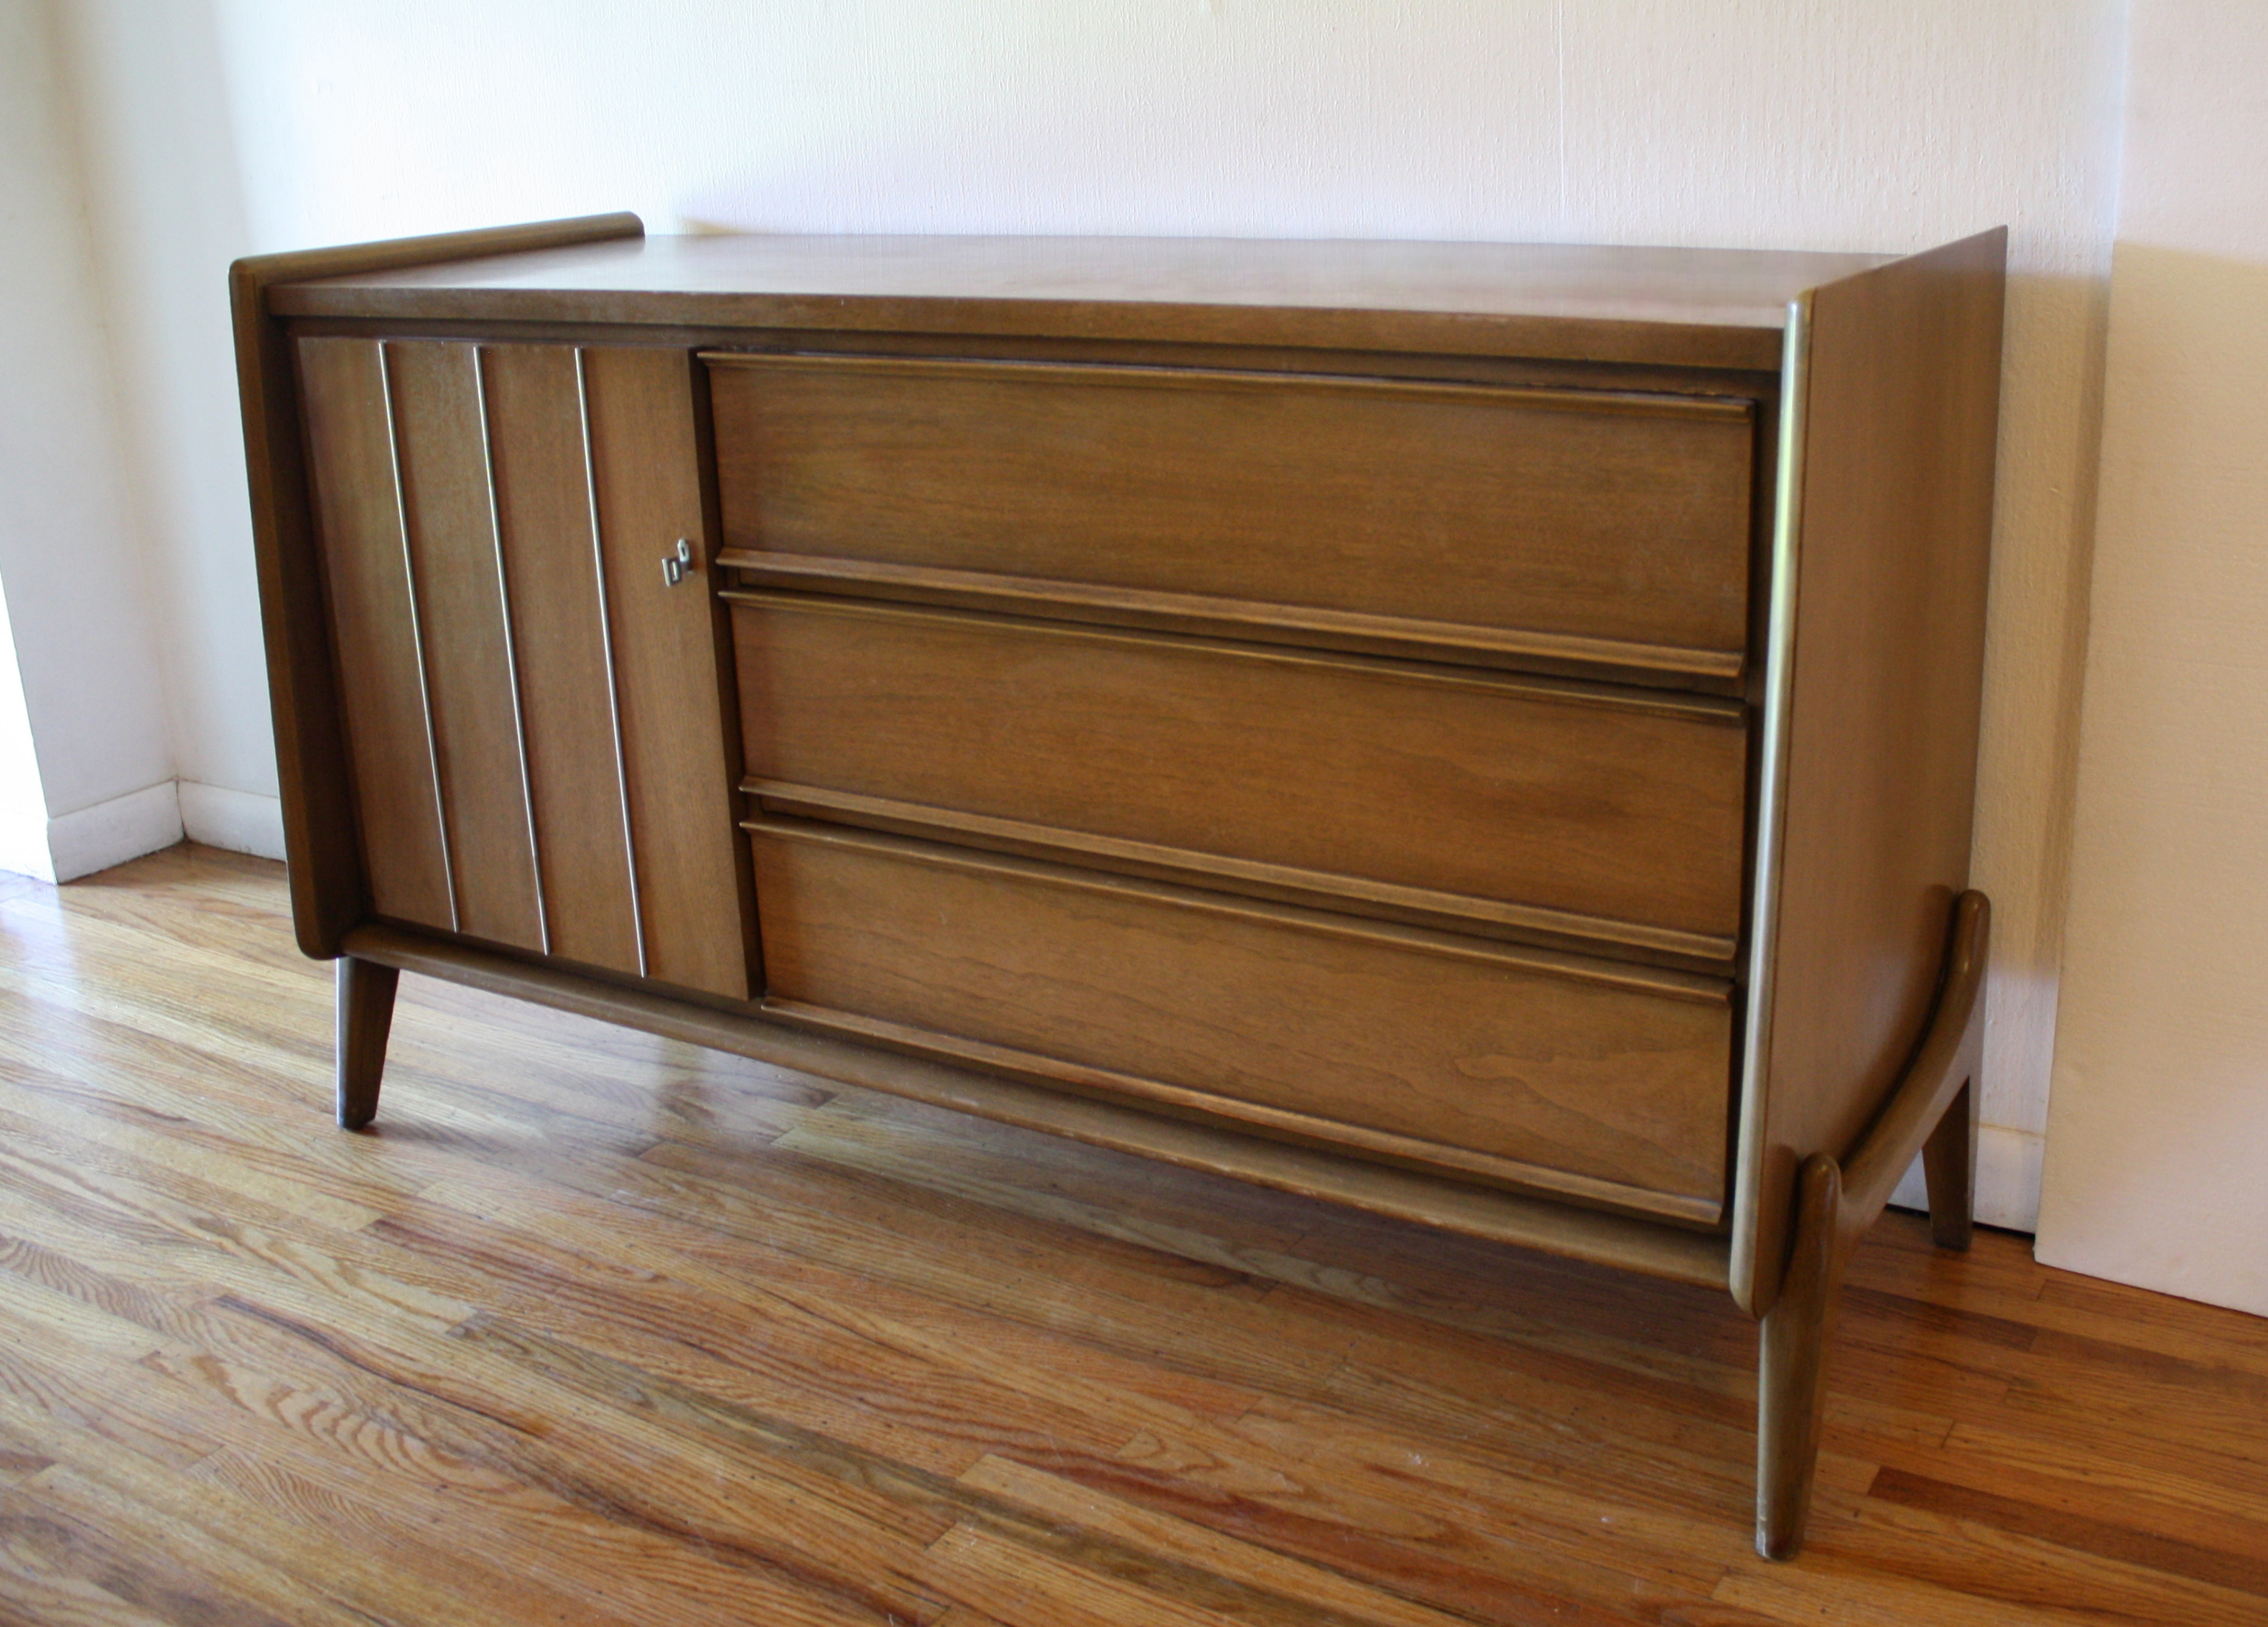 United credenza arched base 1.JPG